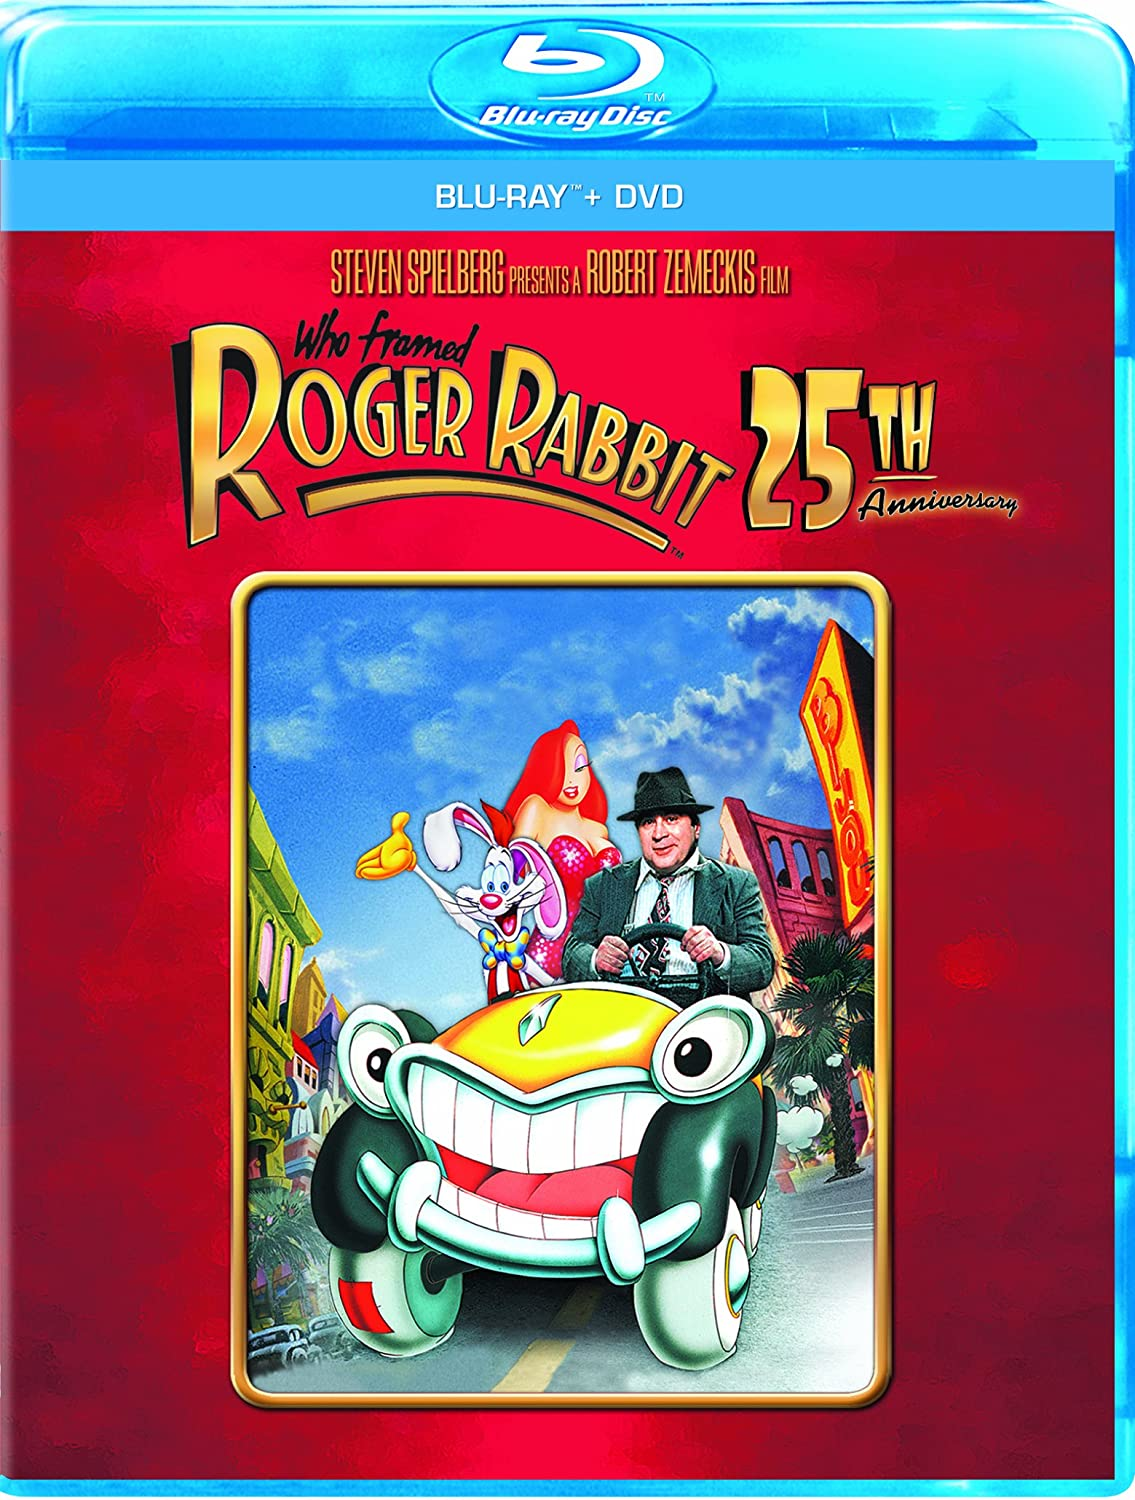 Who Framed Roger Rabbit 25th